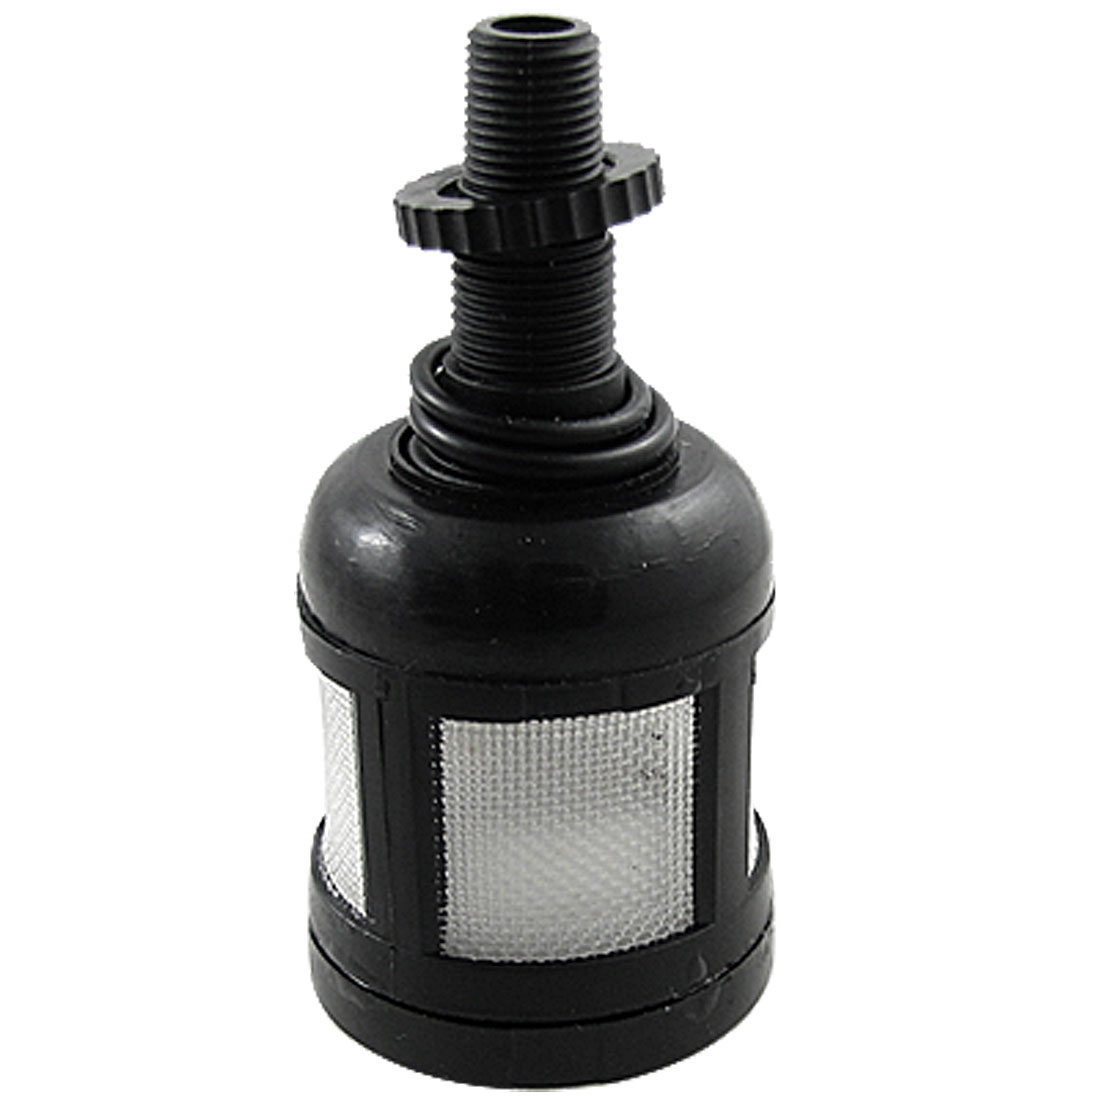 Black Plastic Discharging Water Cup Auto Drain Valve for Air Filters